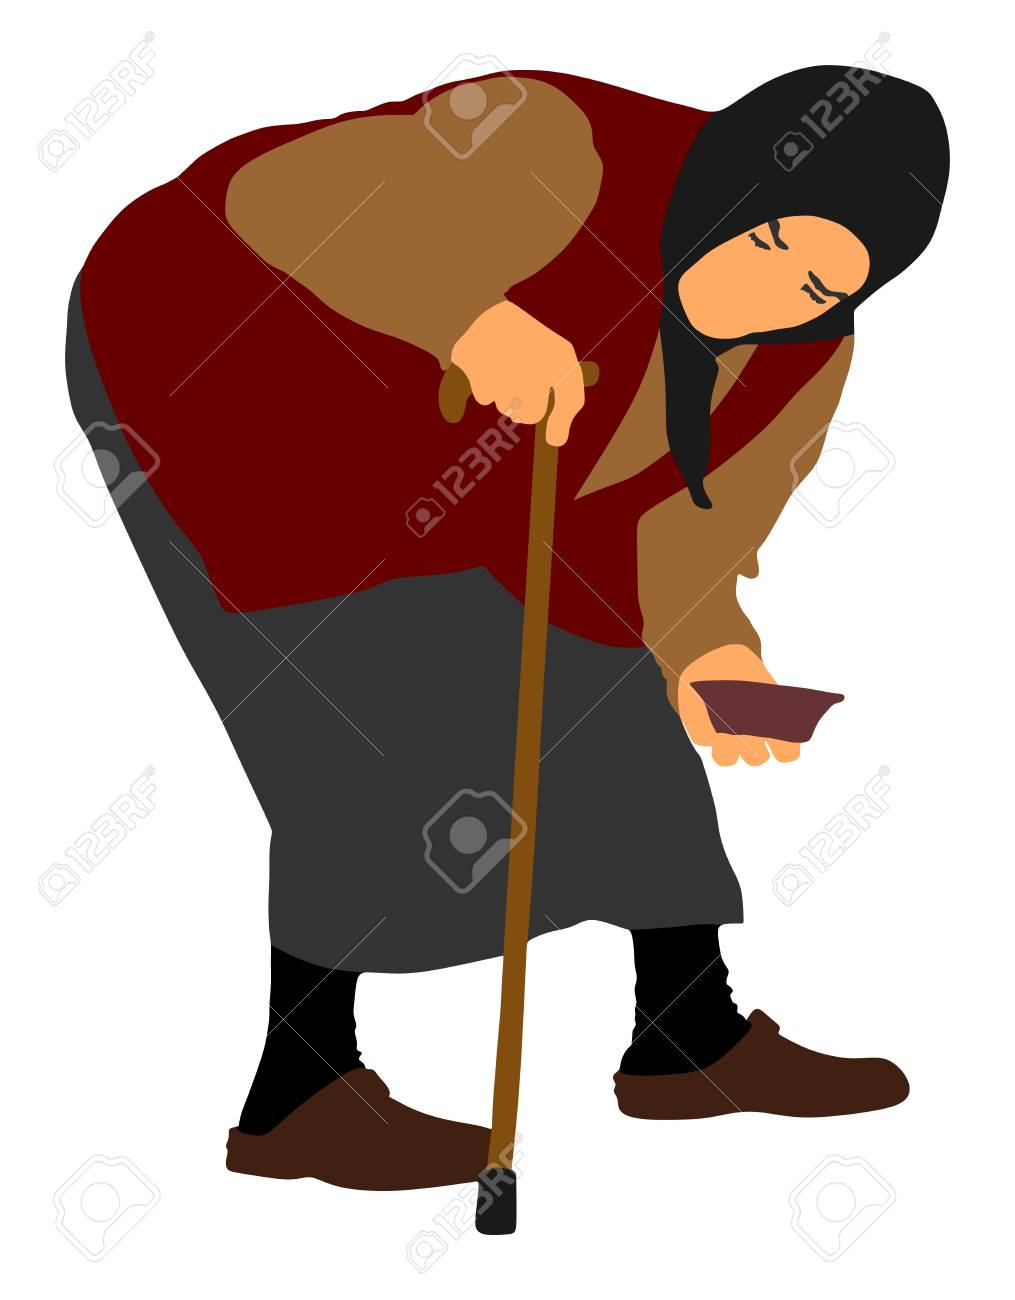 Homeless beggar on a street vector illustration  Senior person